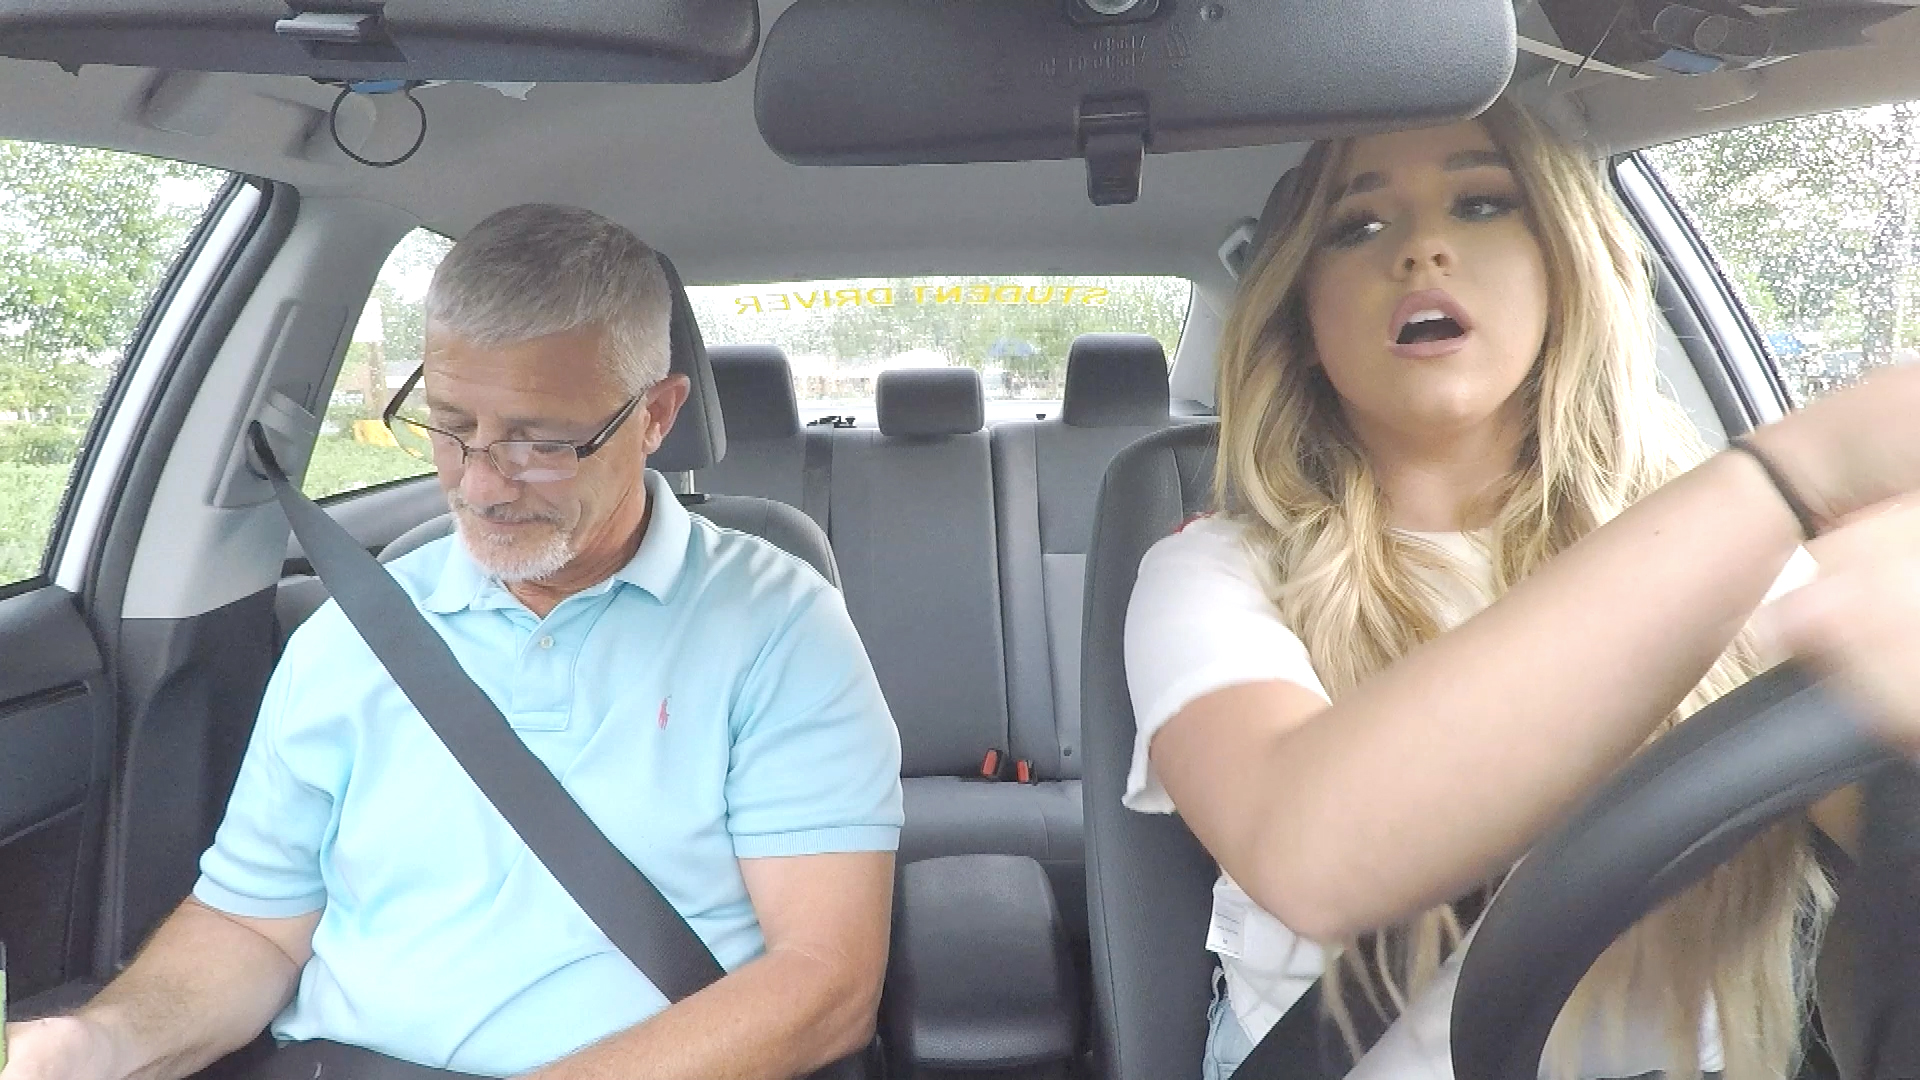 Join Ariana Biermann for Her Driving Test